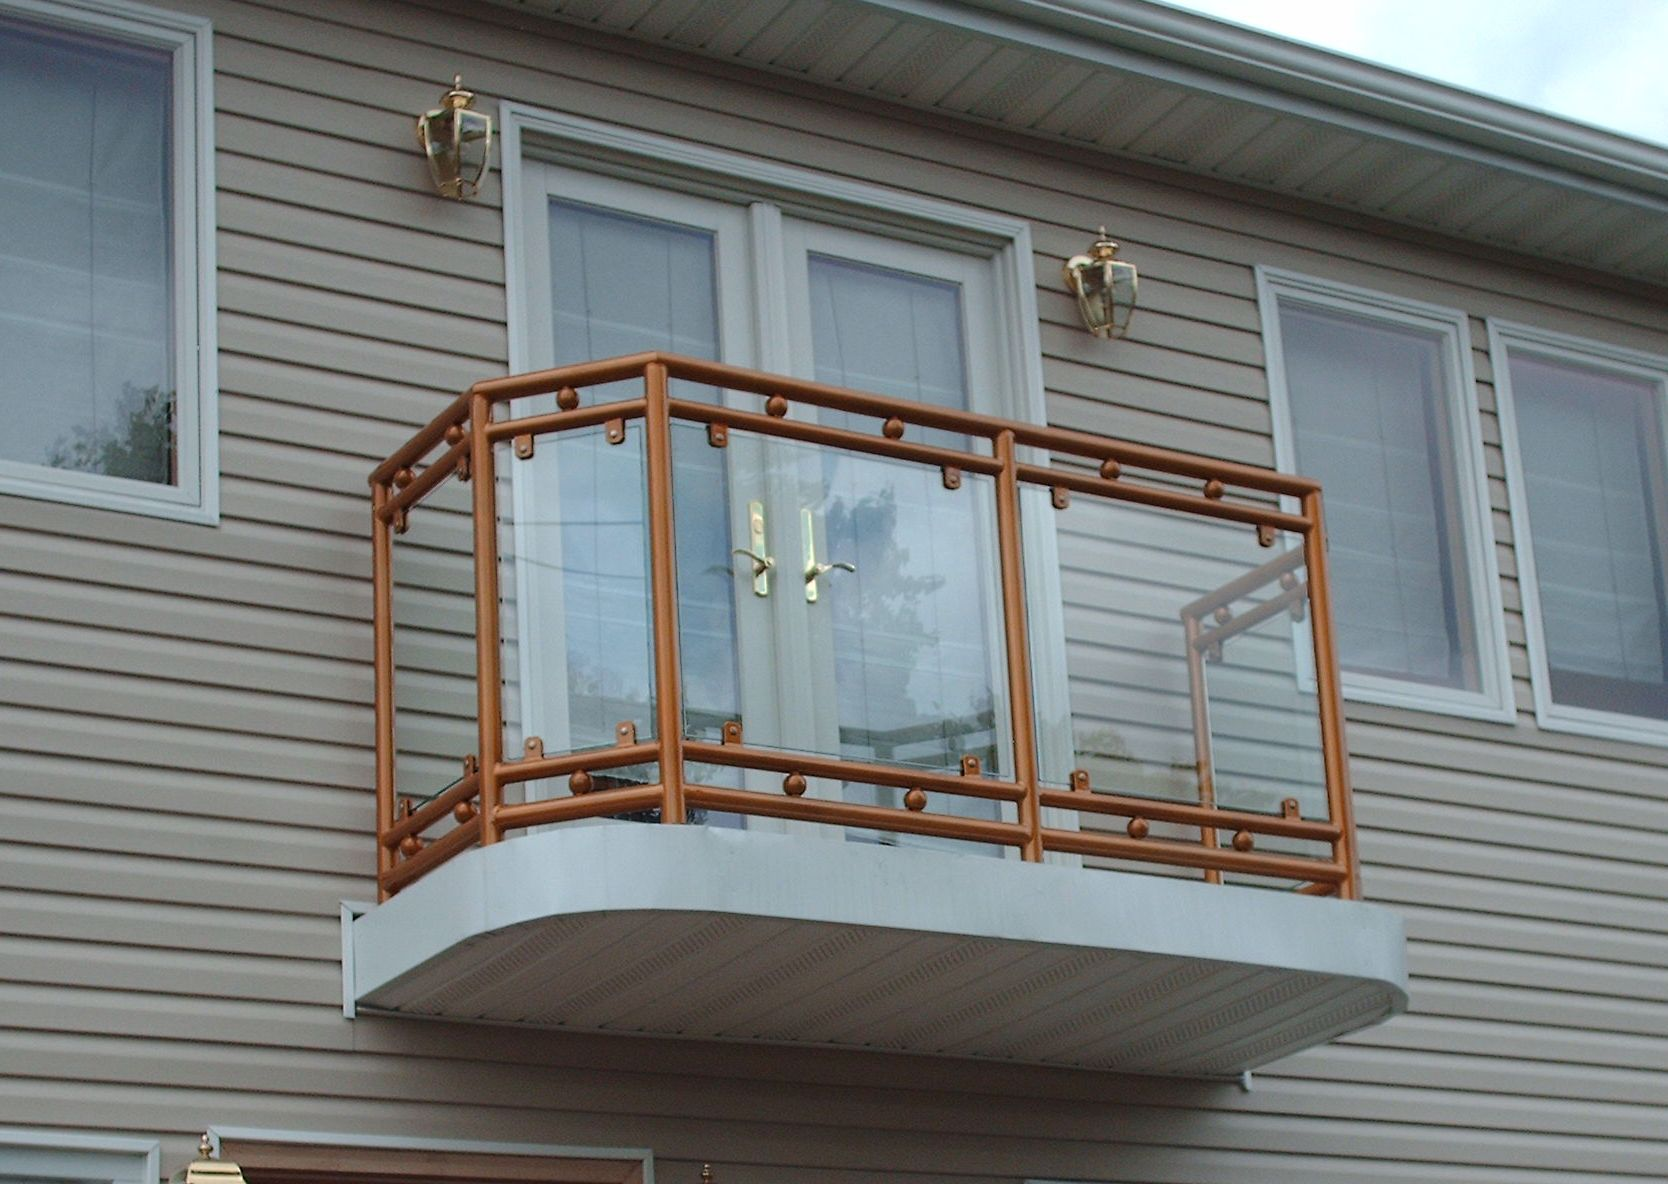 Guardian gate balcony balconies pinterest balcony for Tiny balcony ideas